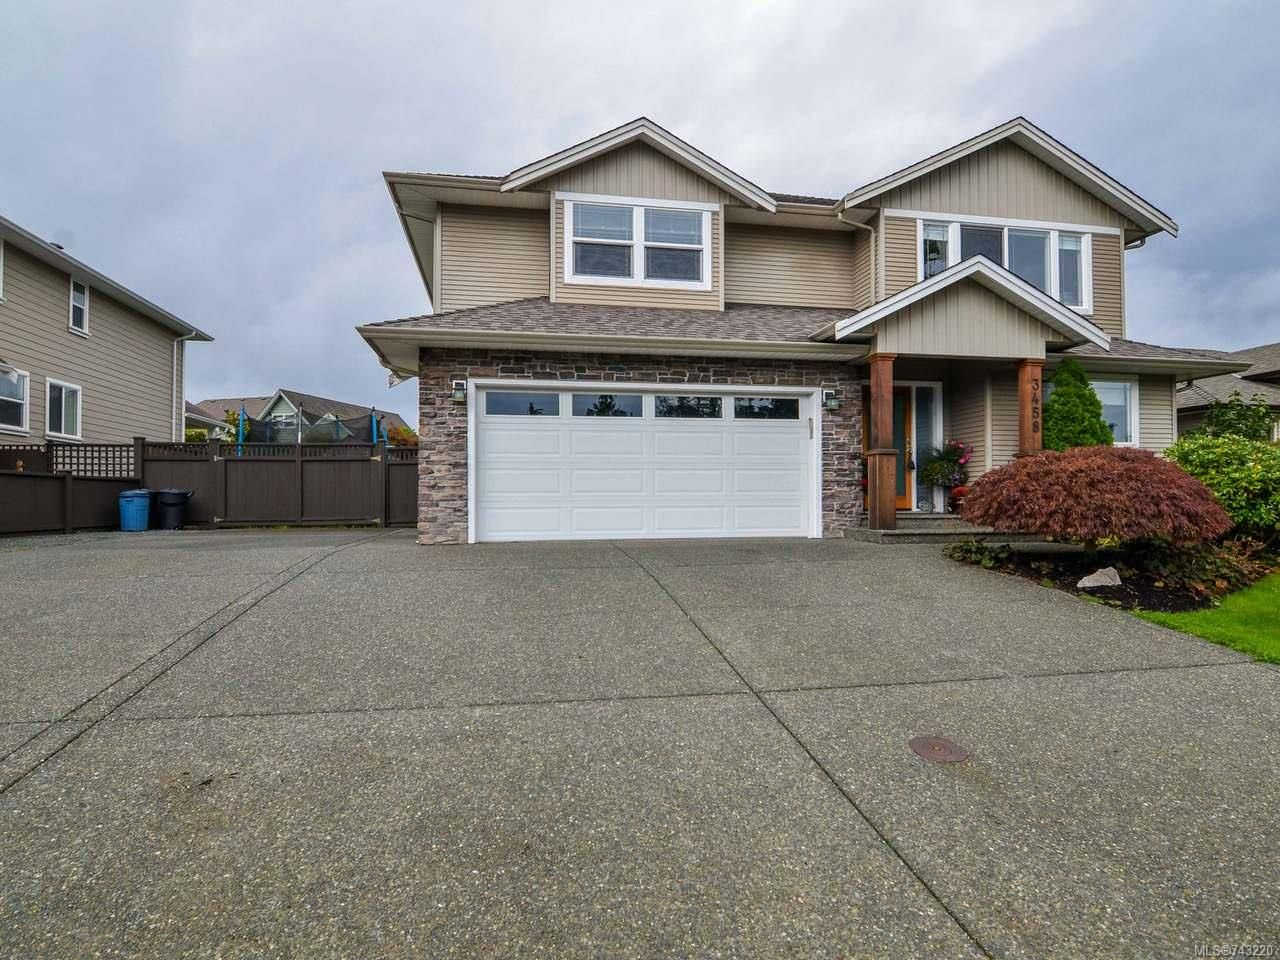 Main Photo: 3458 Montana Dr in CAMPBELL RIVER: CR Willow Point House for sale (Campbell River)  : MLS®# 743220